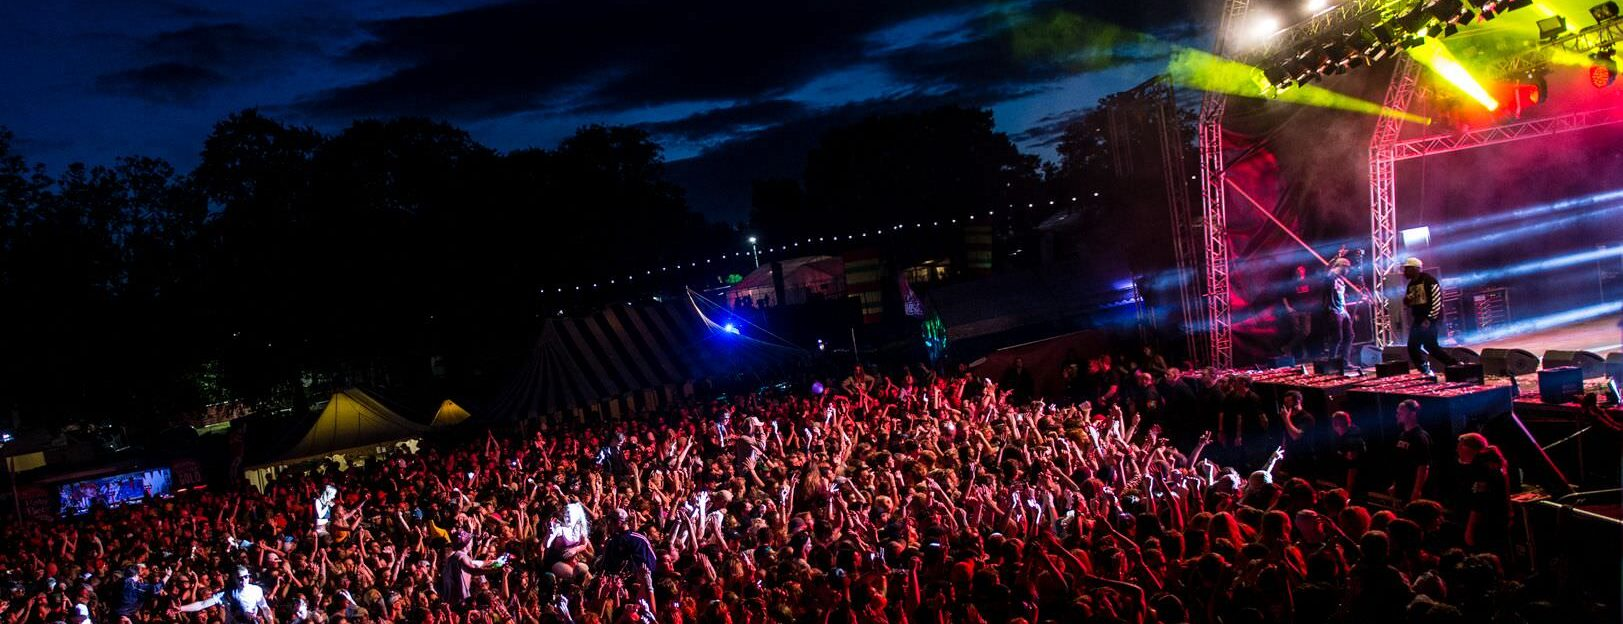 blissfields-mainstage-2016-dizzee-rascal-crowd